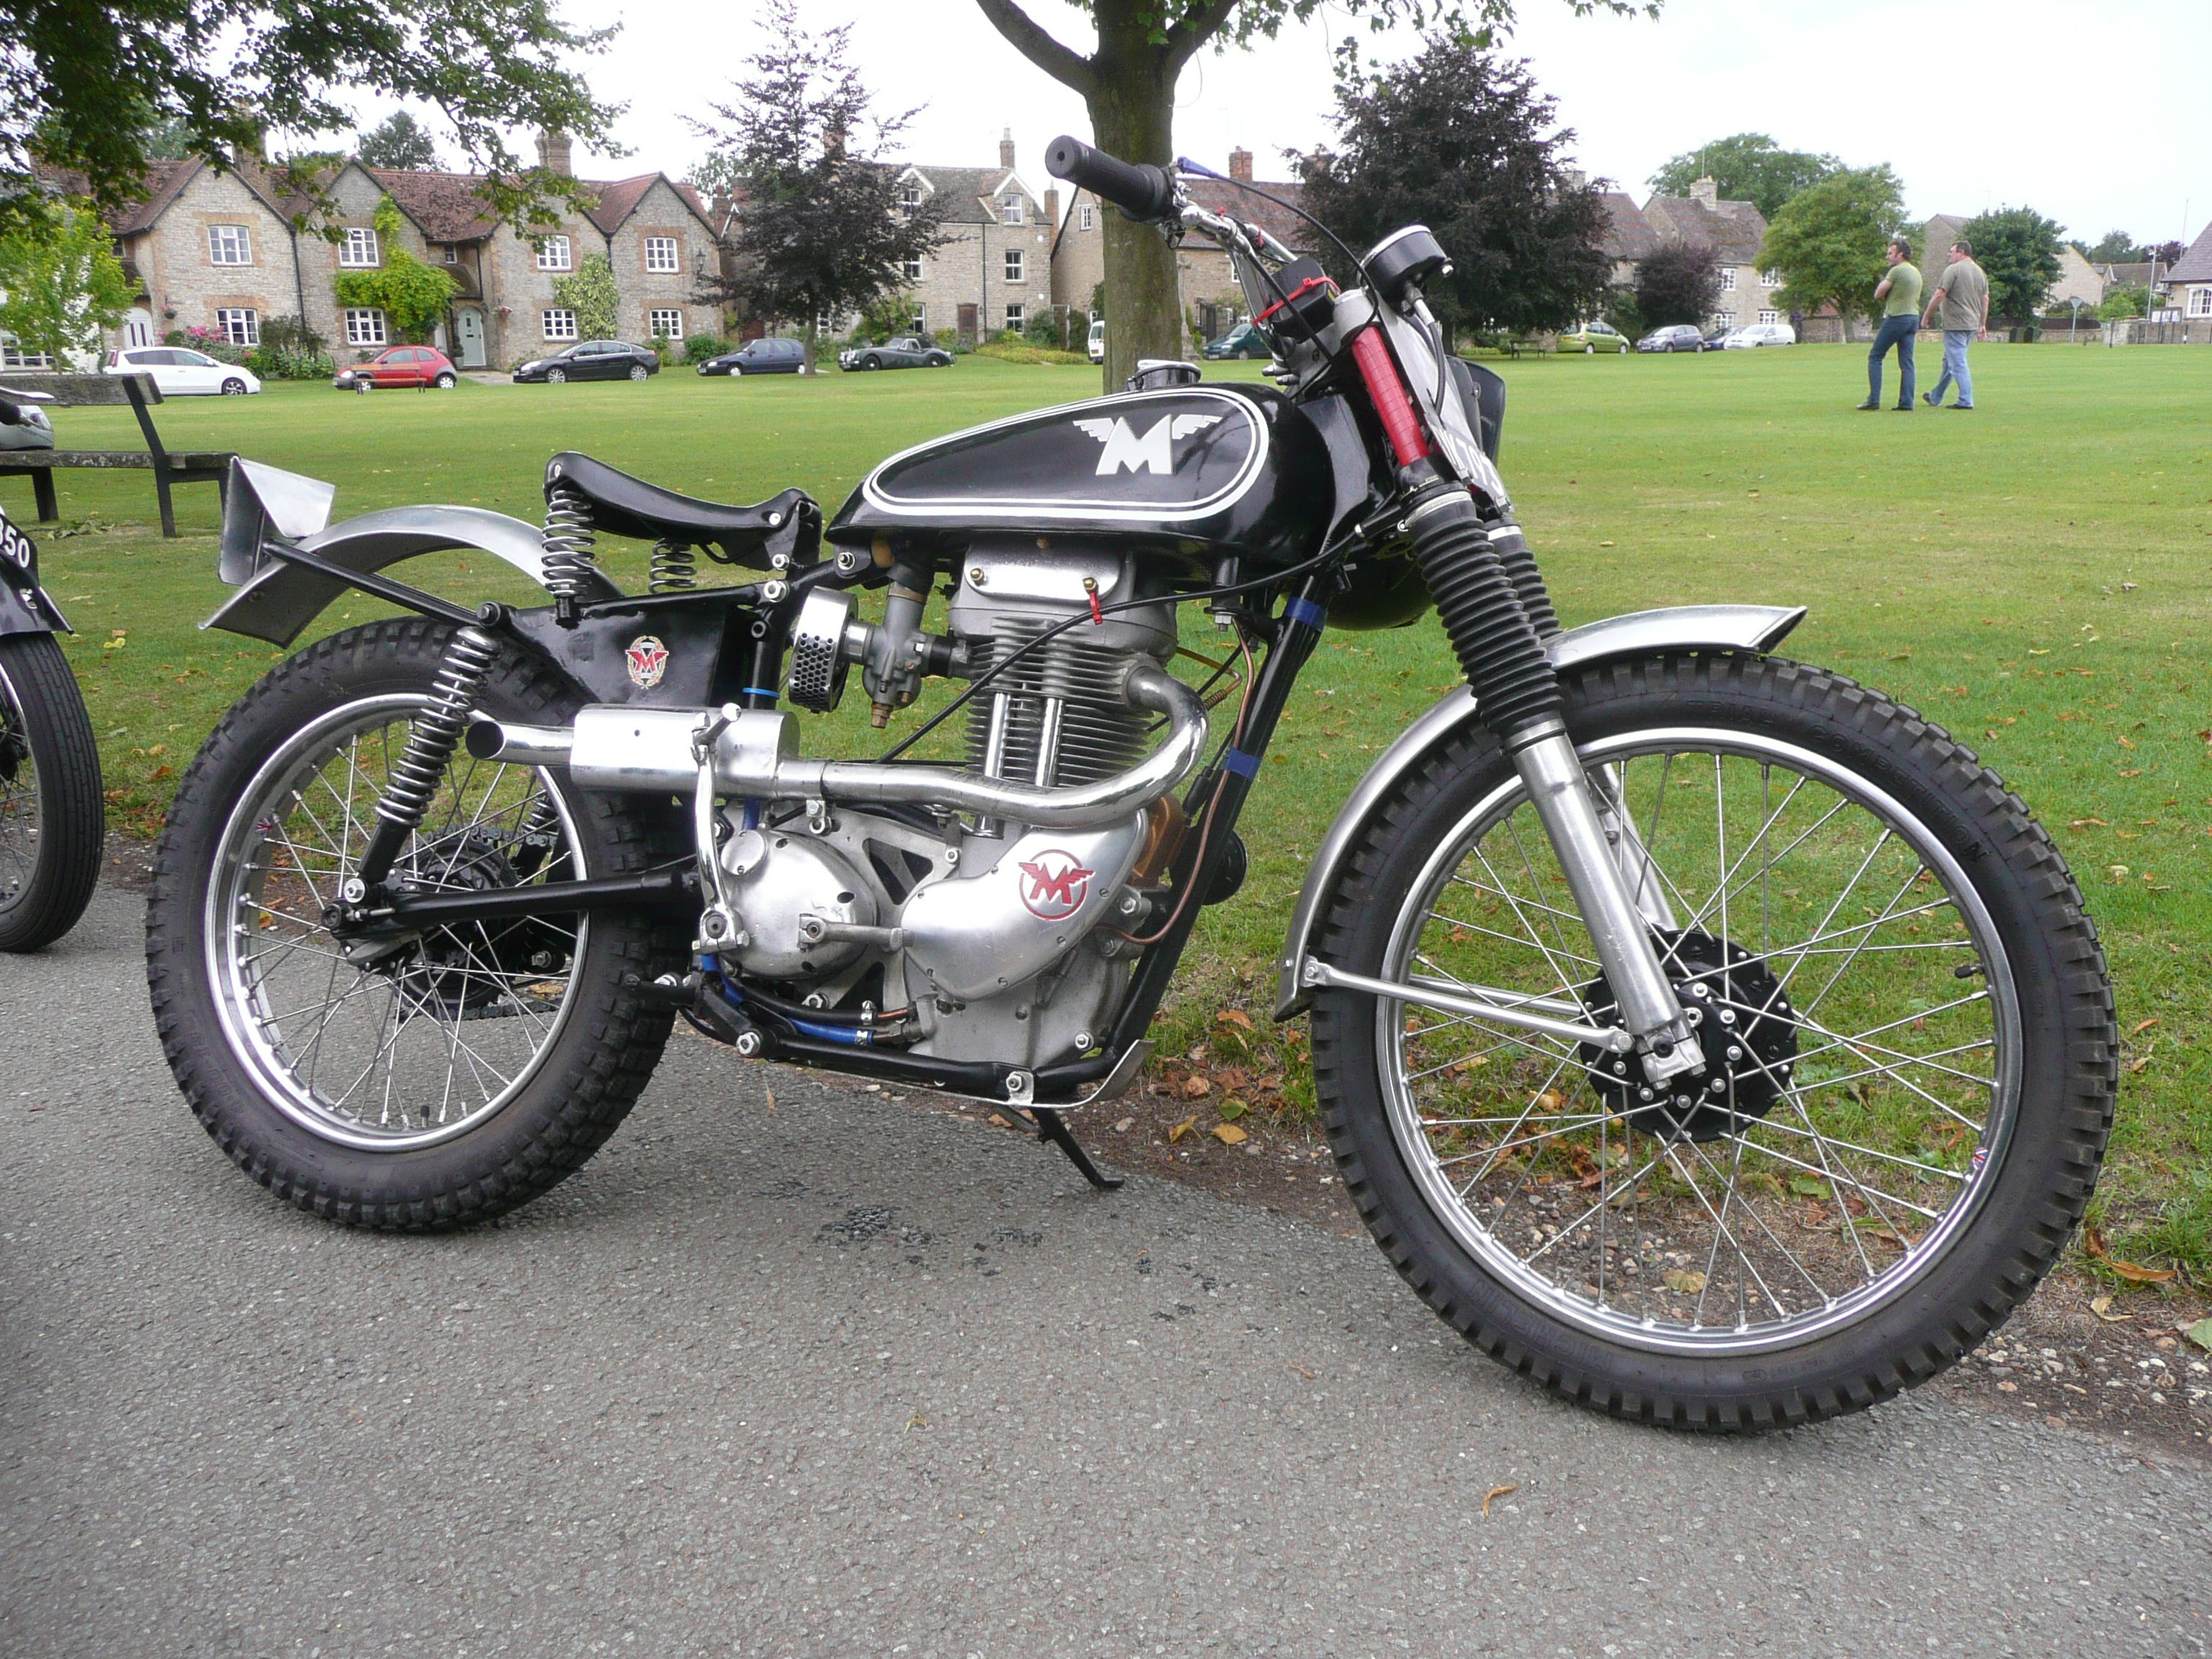 Matchless g 11 csr for sale 1958 on car and classic uk c544589 - Classic Matchless Trials To Model A Scrambler Tracker On A Proper Job